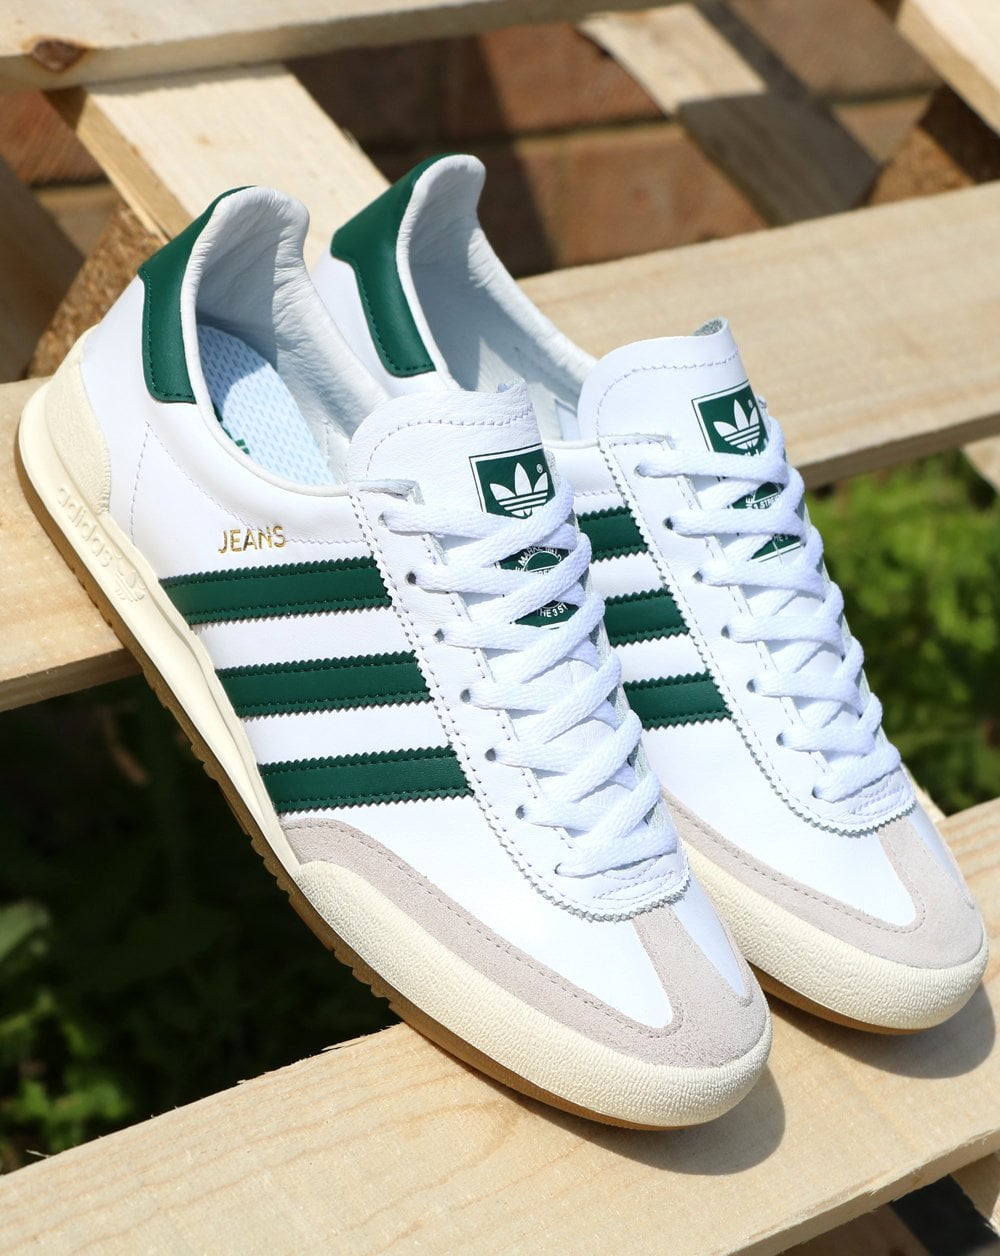 8cd695f586 adidas Trainers Adidas Jeans Leather Trainers White Green